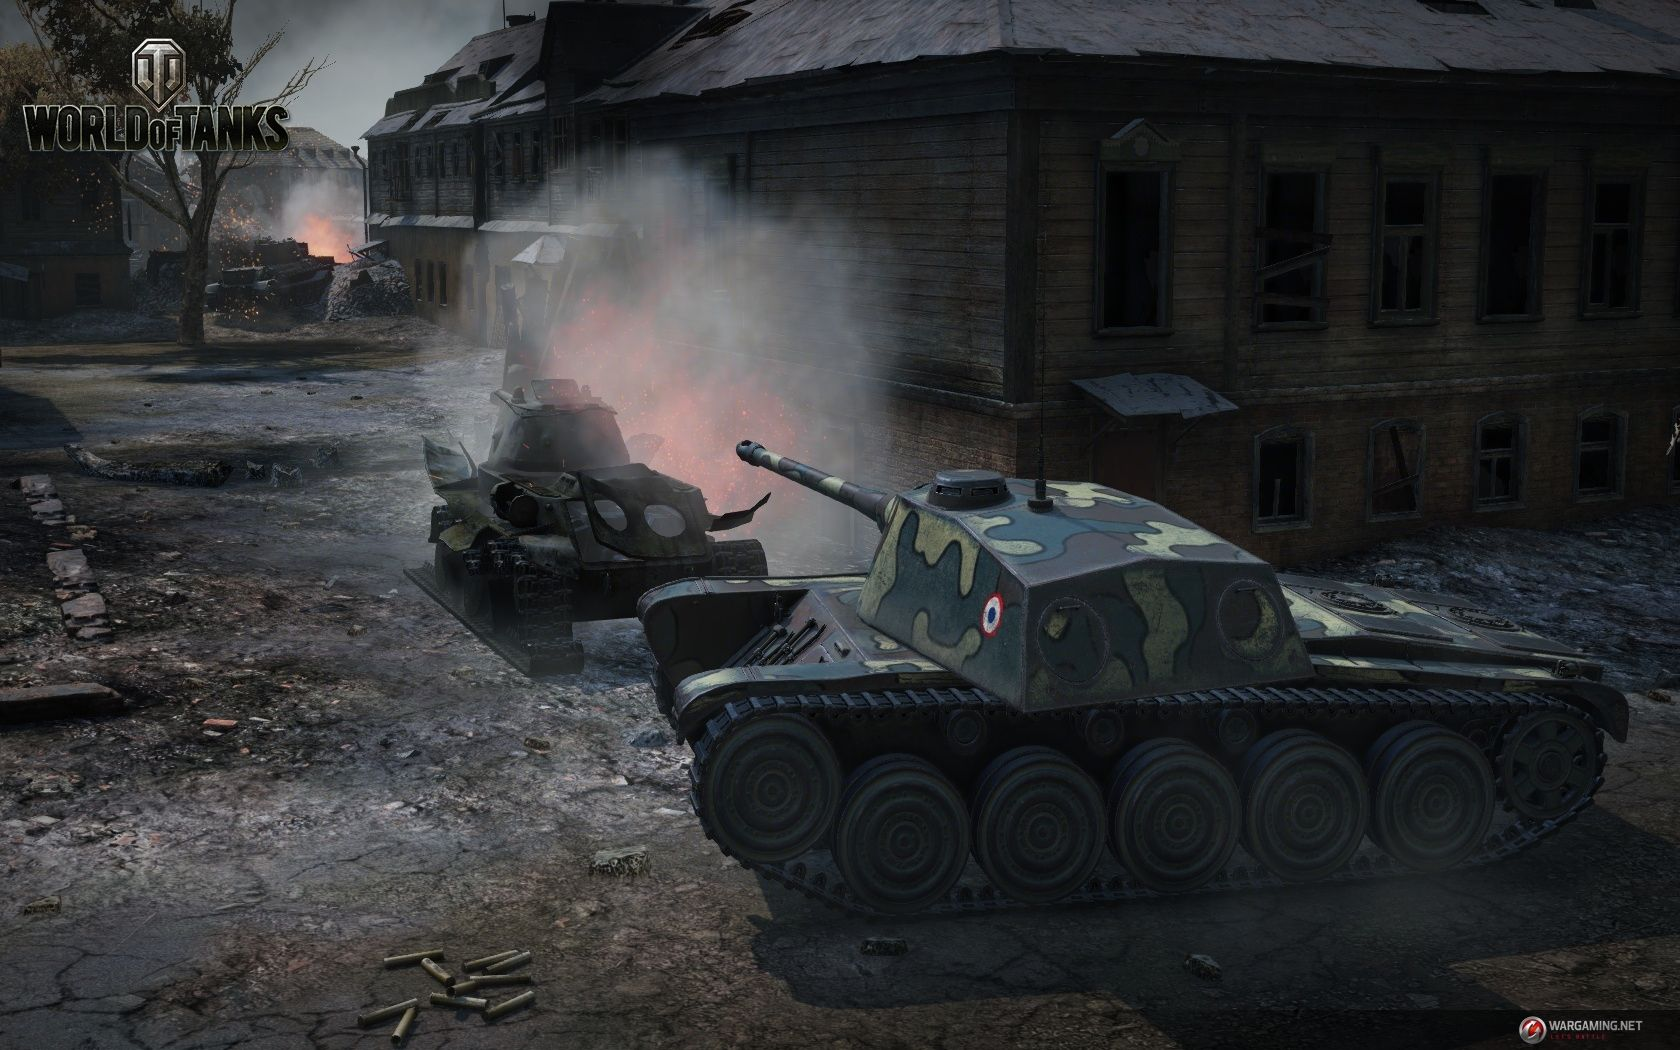 world tanks matchmaking World of tanks is a global online multiplayer free-to-play game dedicated to tank warfare in the okay admittedly the game has some matchmaking and balancing.